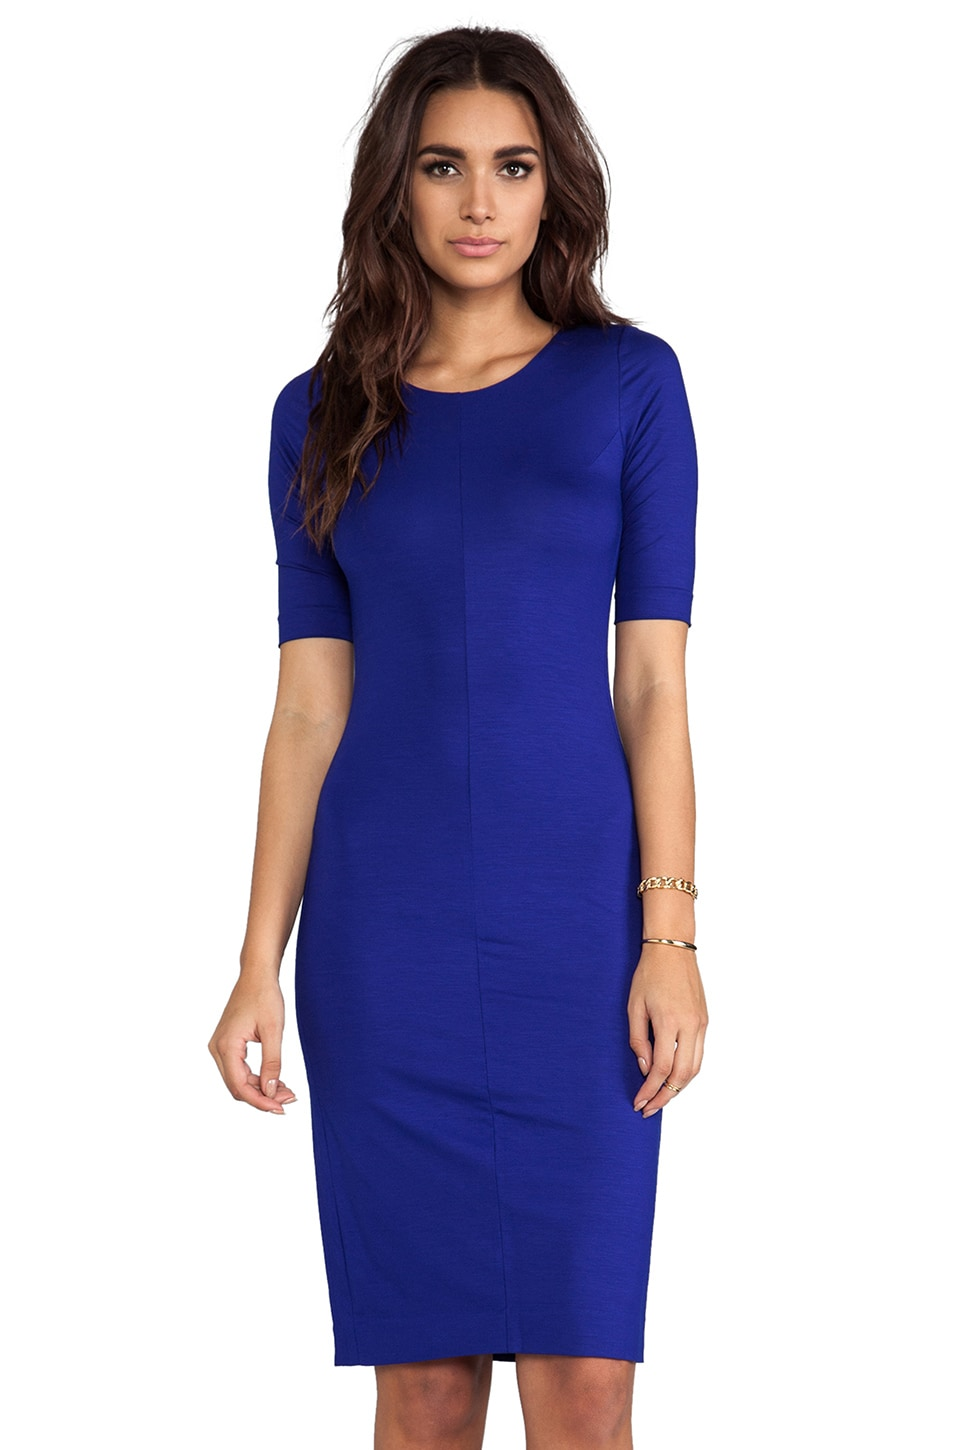 Diane von Furstenberg Raquel Dress in Tanzanite Blue